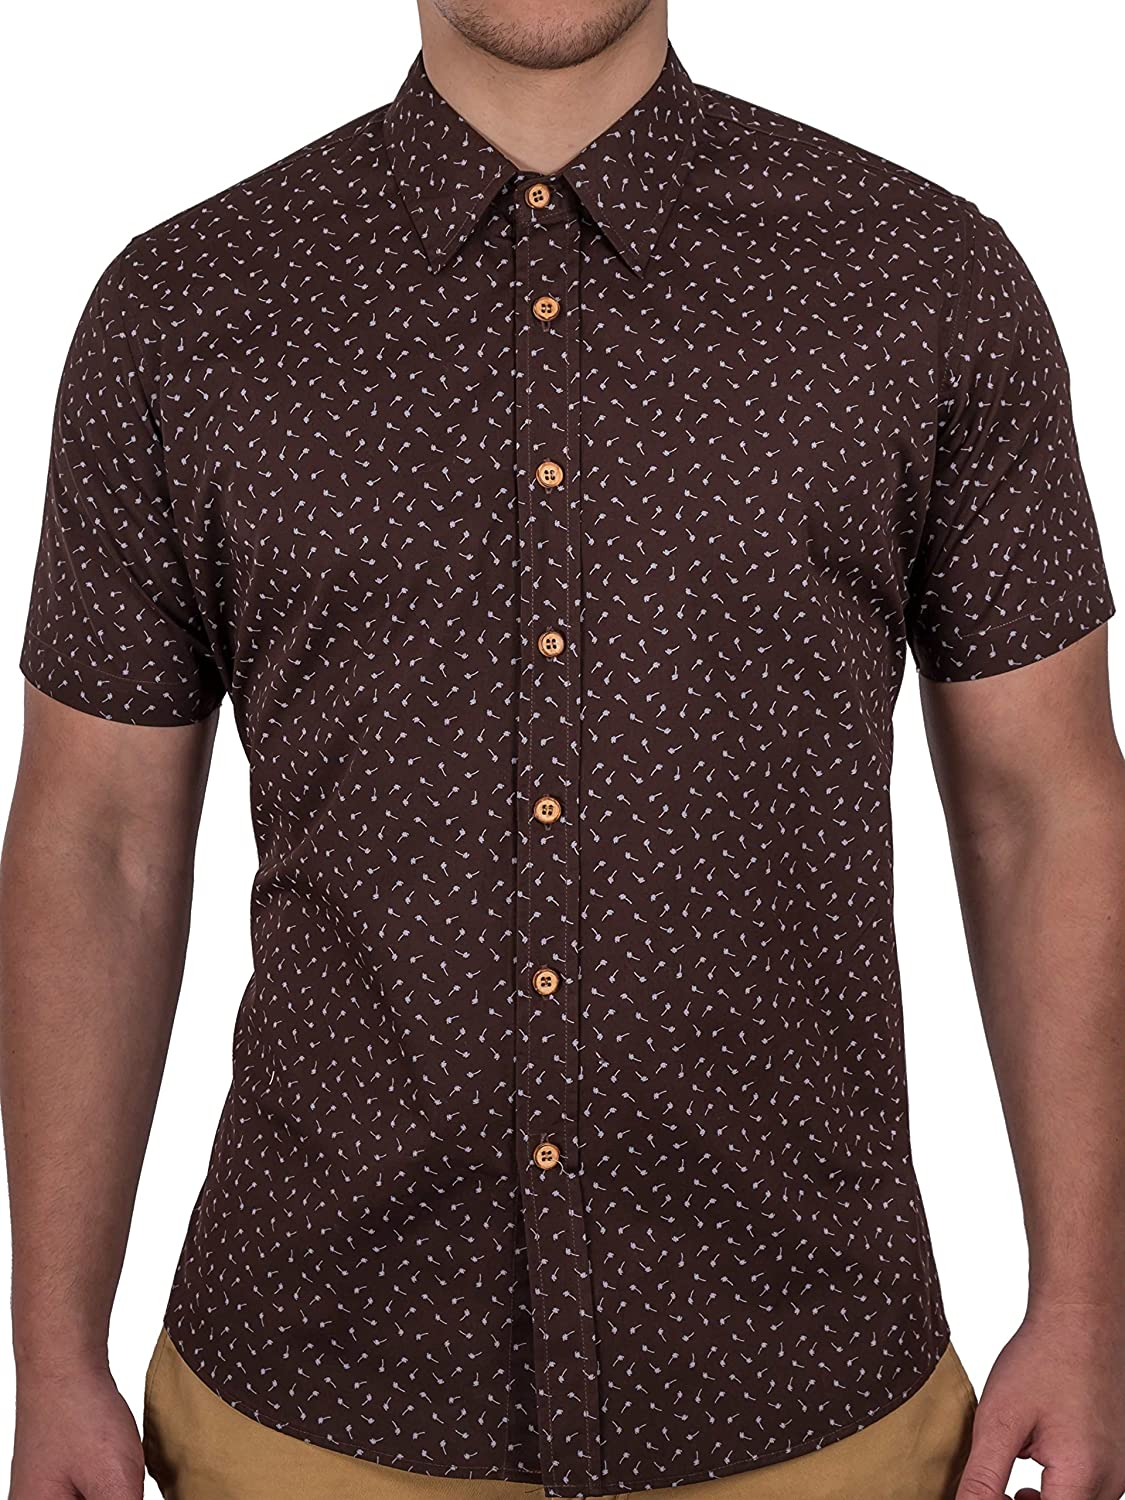 185e0f6d Smalll plam tree break up the chocolate brown cotton look perfect for summer.  Wood buttons, 100% Natural Materials Limited Edition, only 200 shirts made  in ...